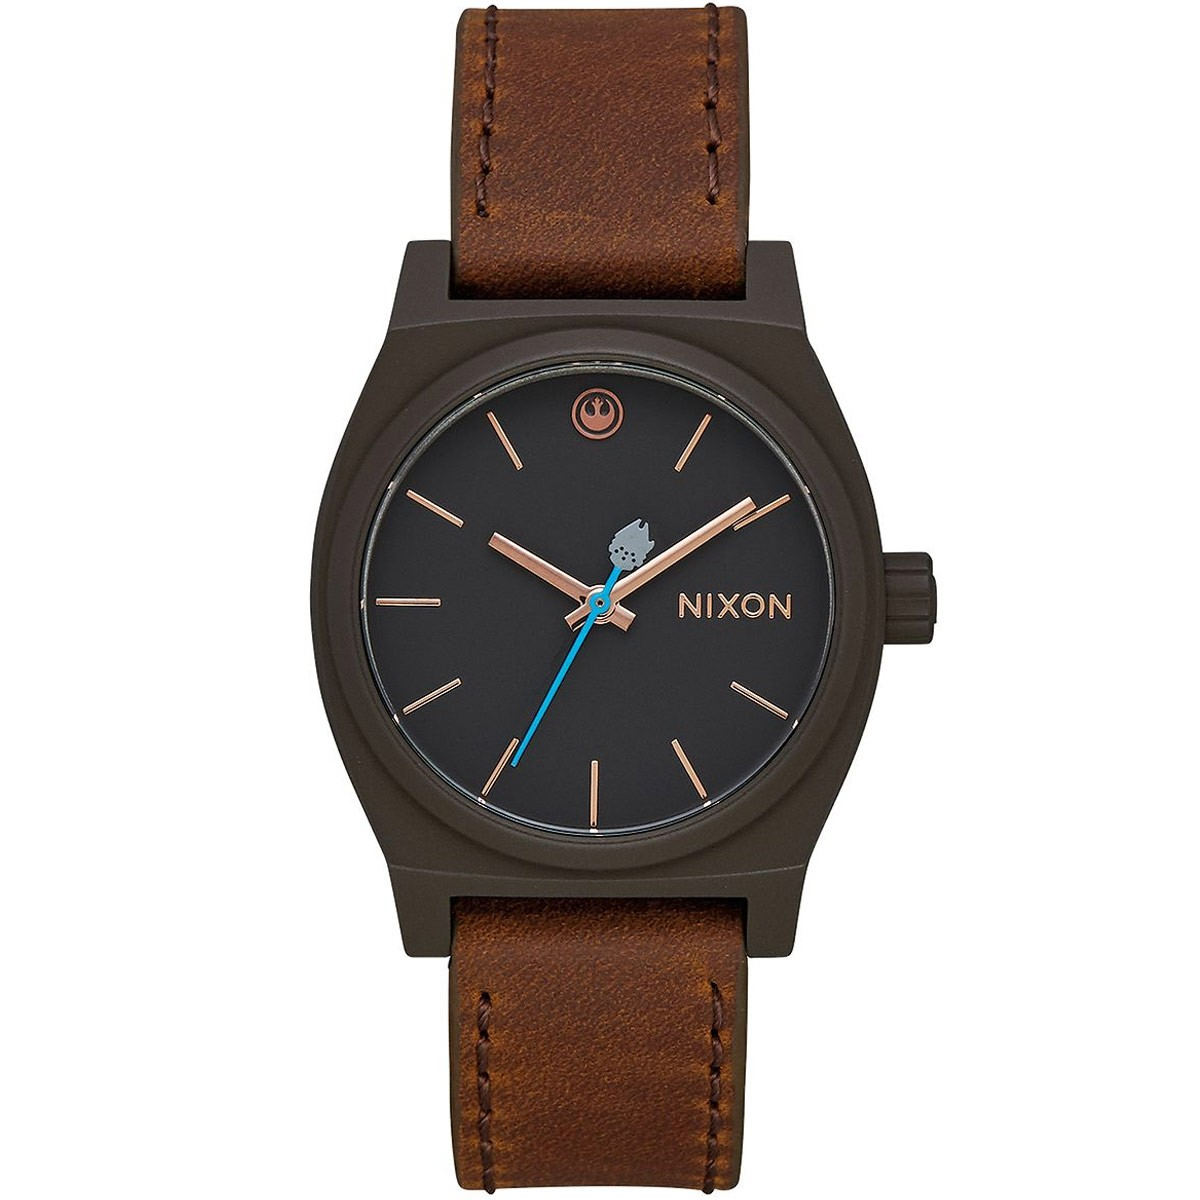 Nixon x Star Wars Accessories Collection For The Dark Side